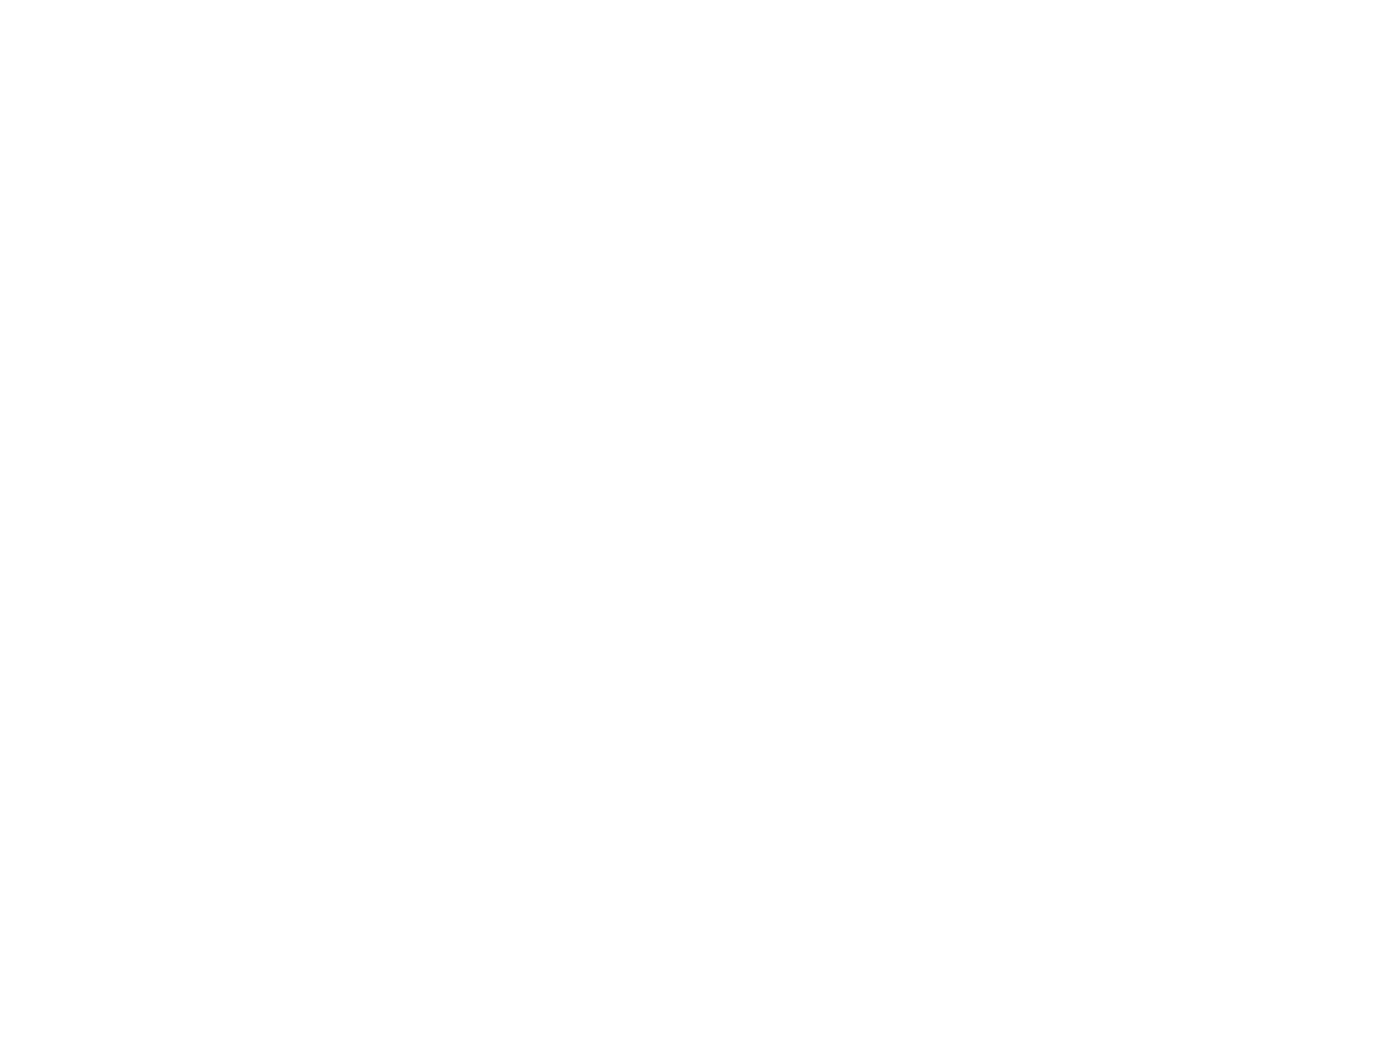 GFX100S 102MP × LARGE FORMAT HIGH MOBILITY